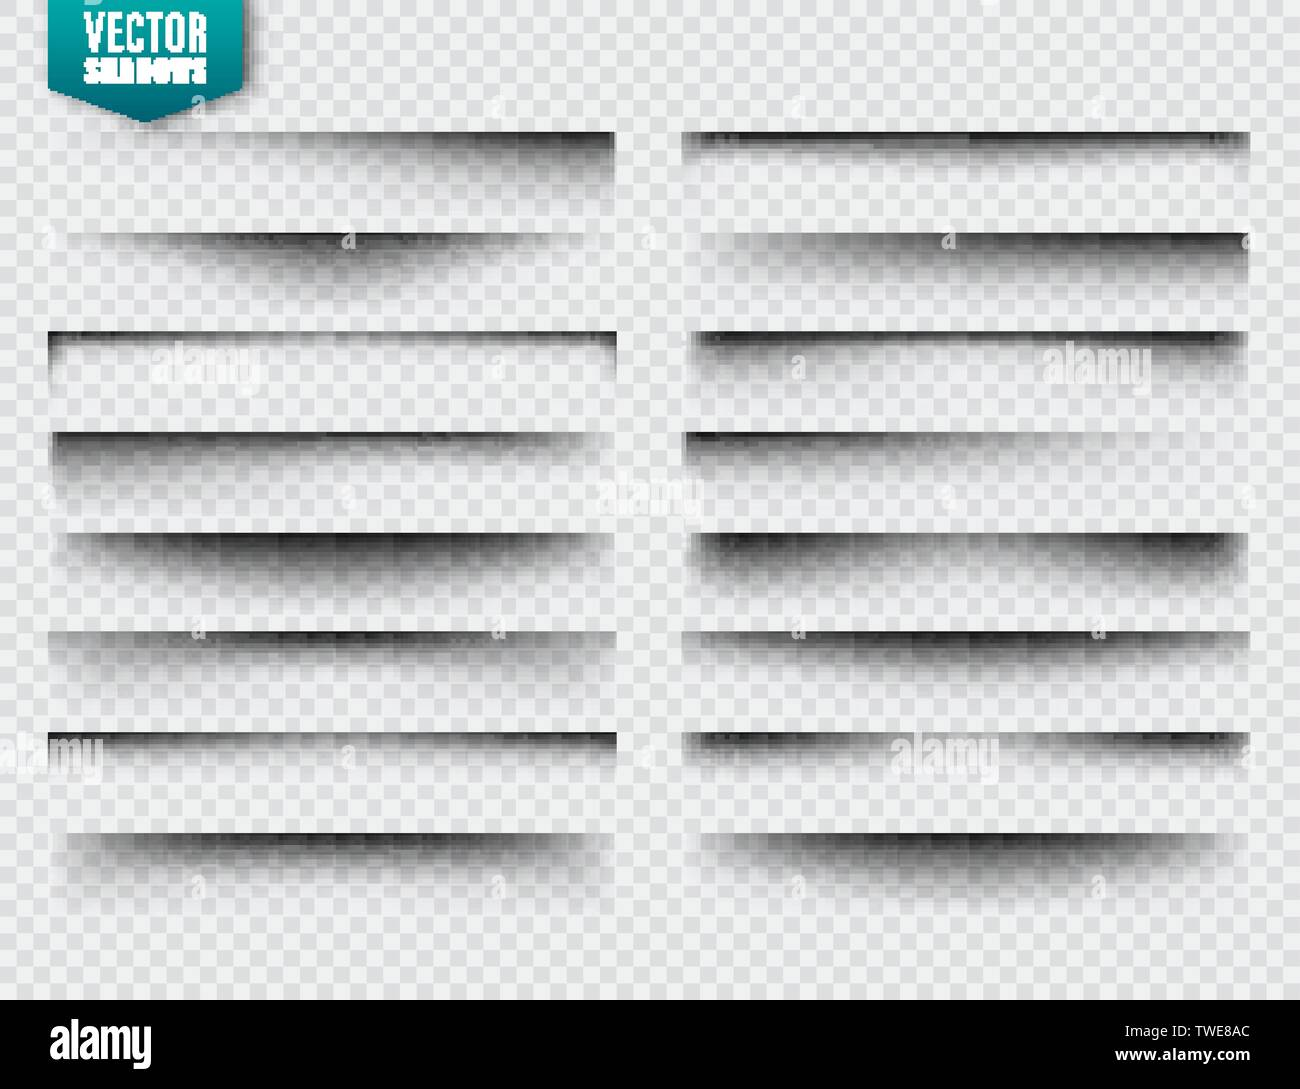 Vector shadows set. Page dividers on transparent background. Realistic isolated shadow. Vector illustration. - Stock Image